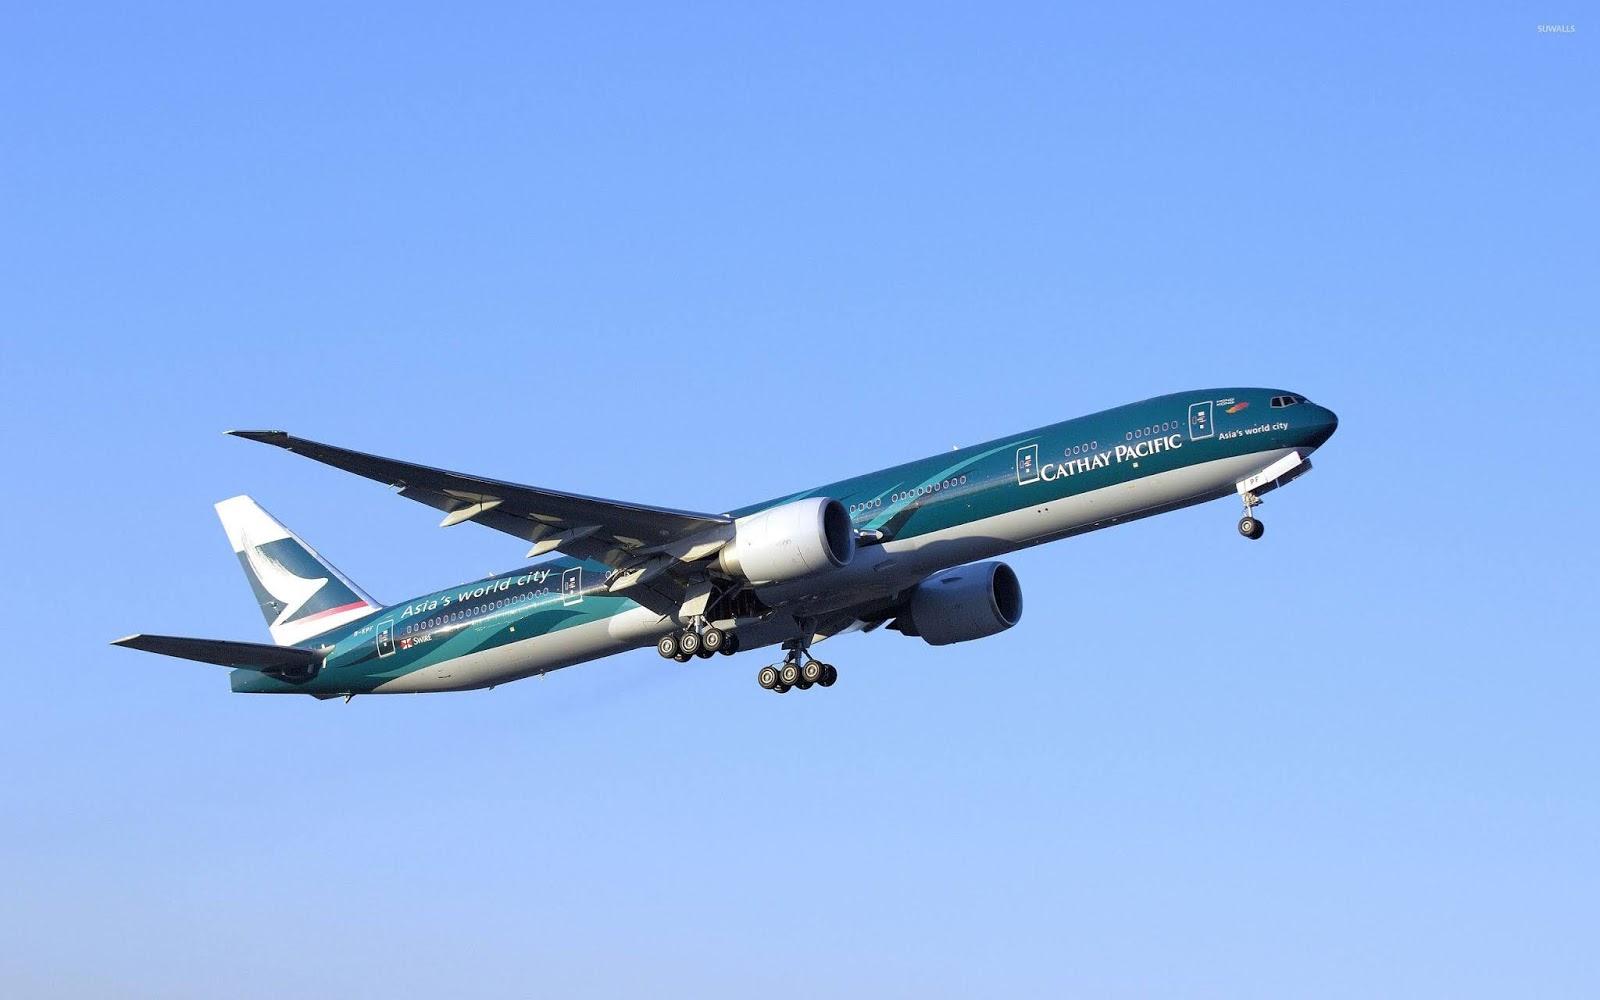 Cathay Pacific Boeing 777 flight wallpapers